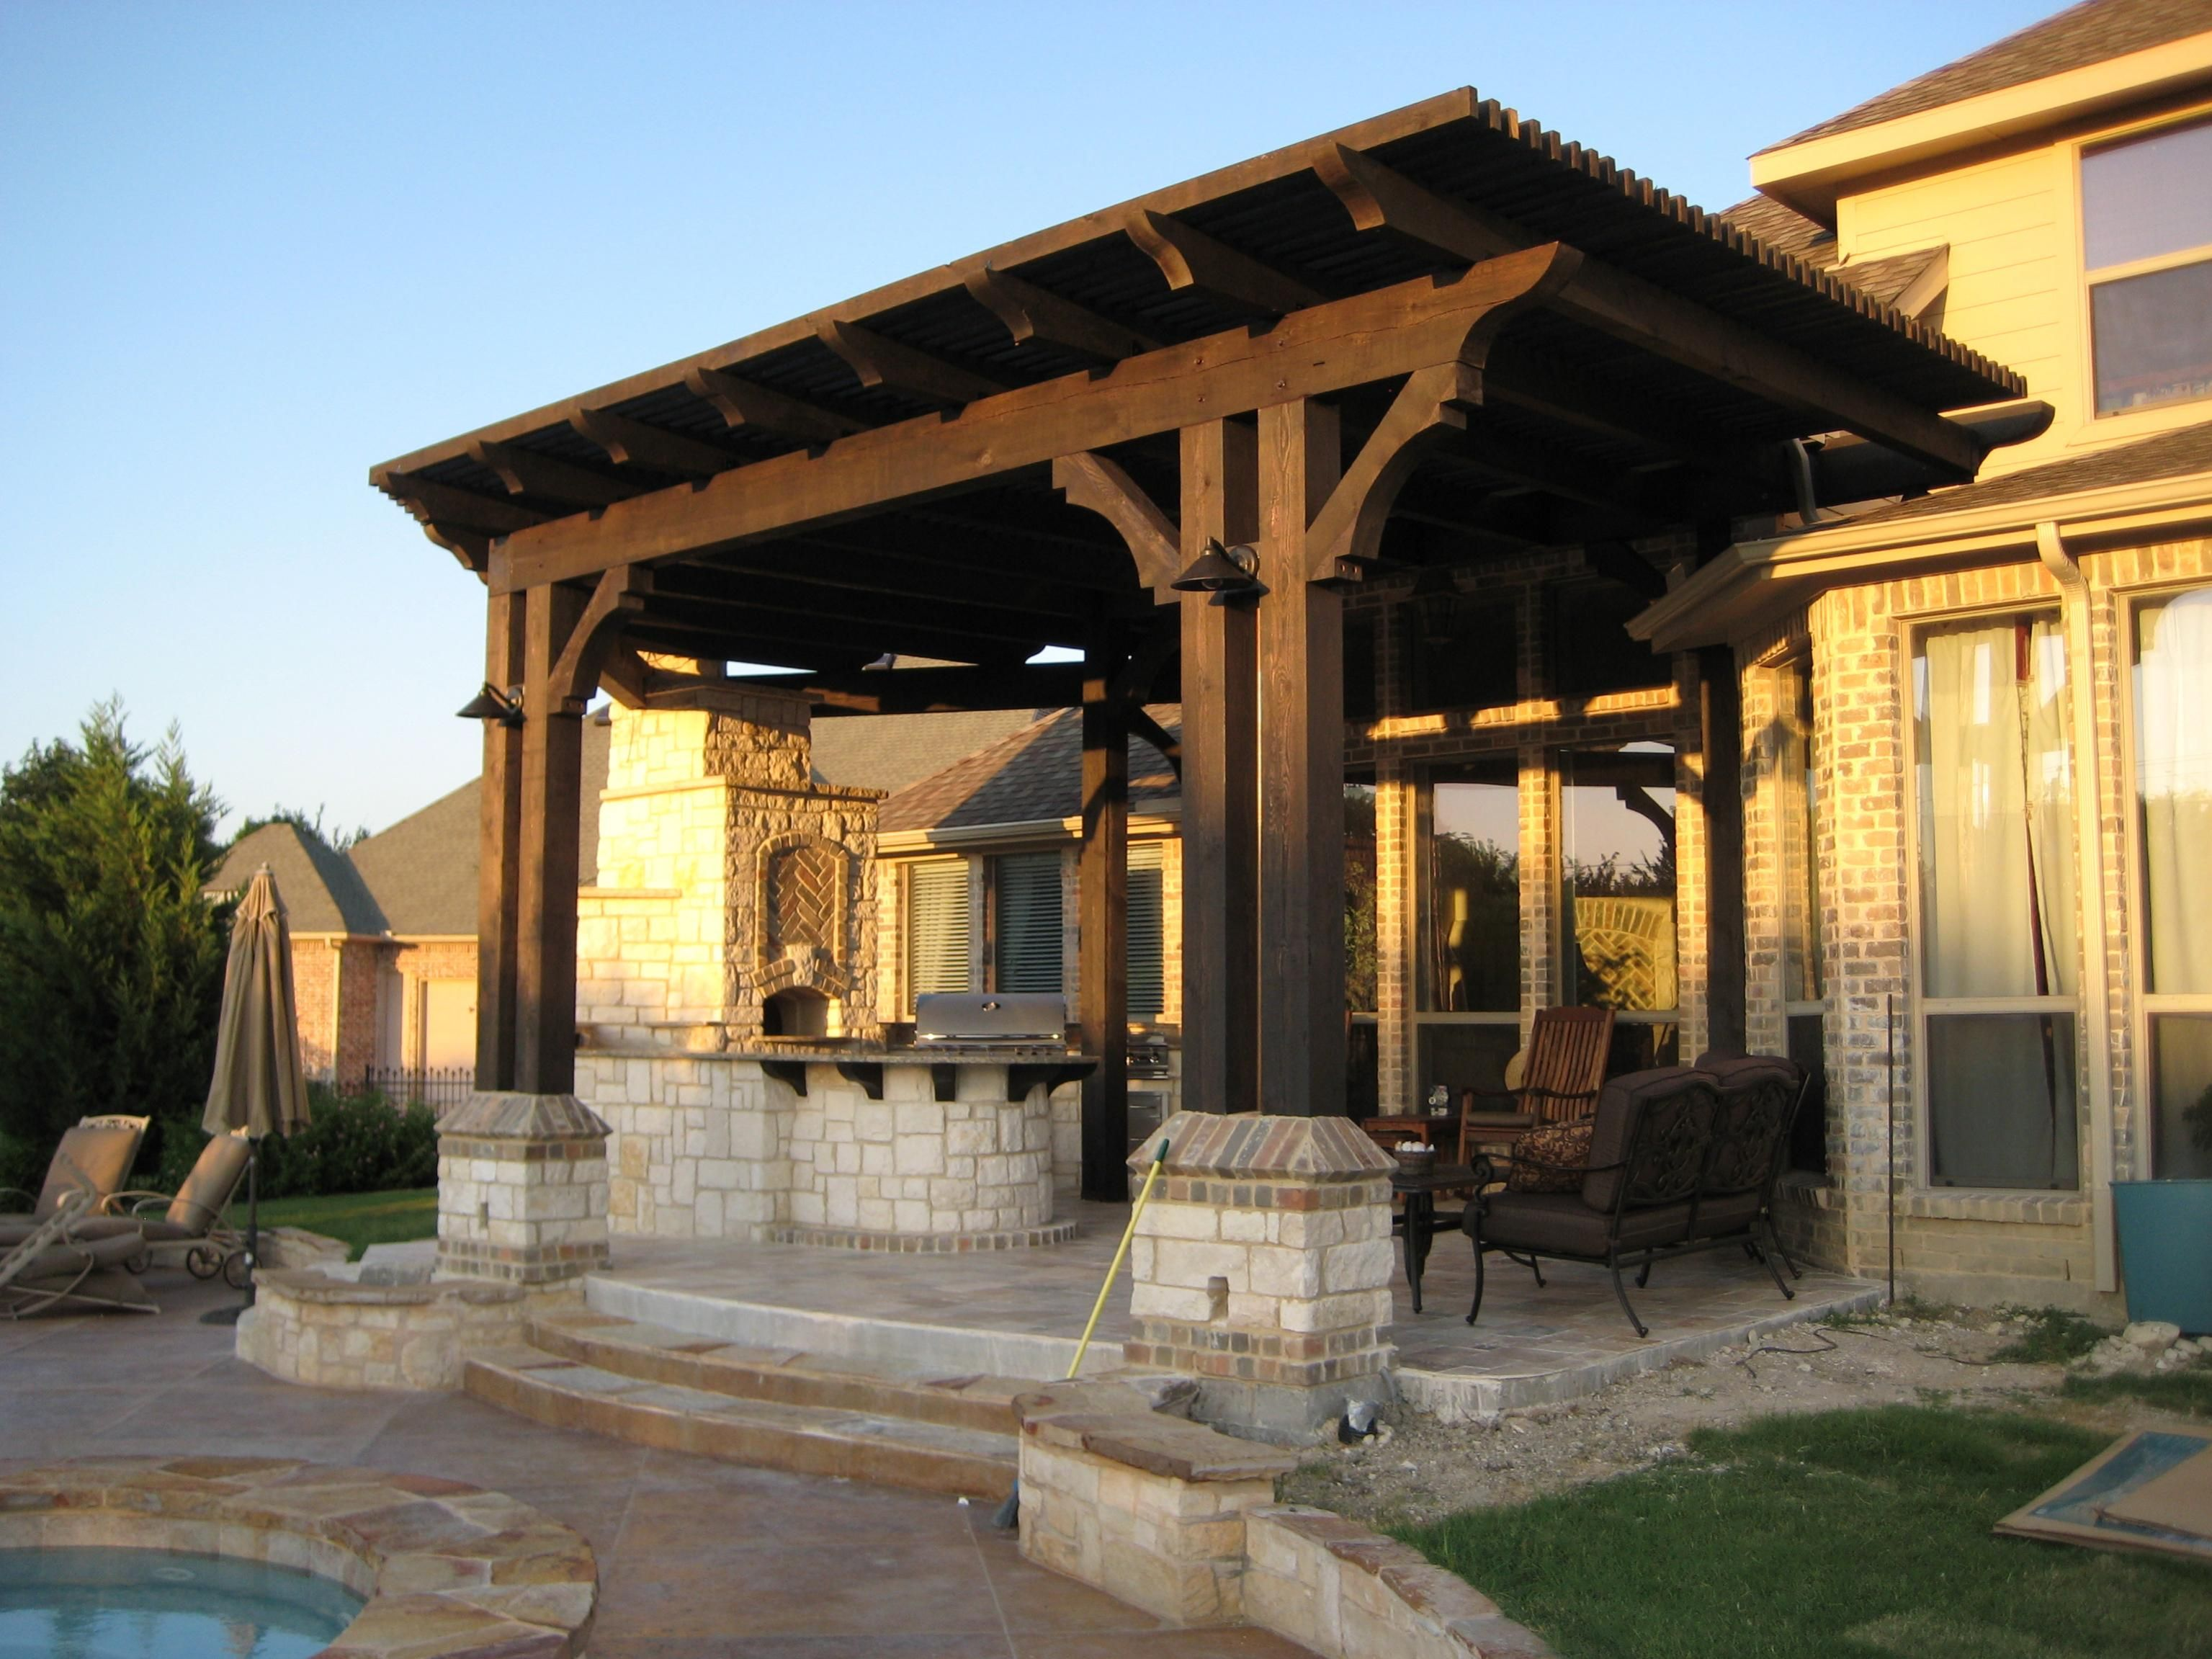 Pergola outdoor kitchen attached to house pergola design for Outdoor kitchen pergola ideas